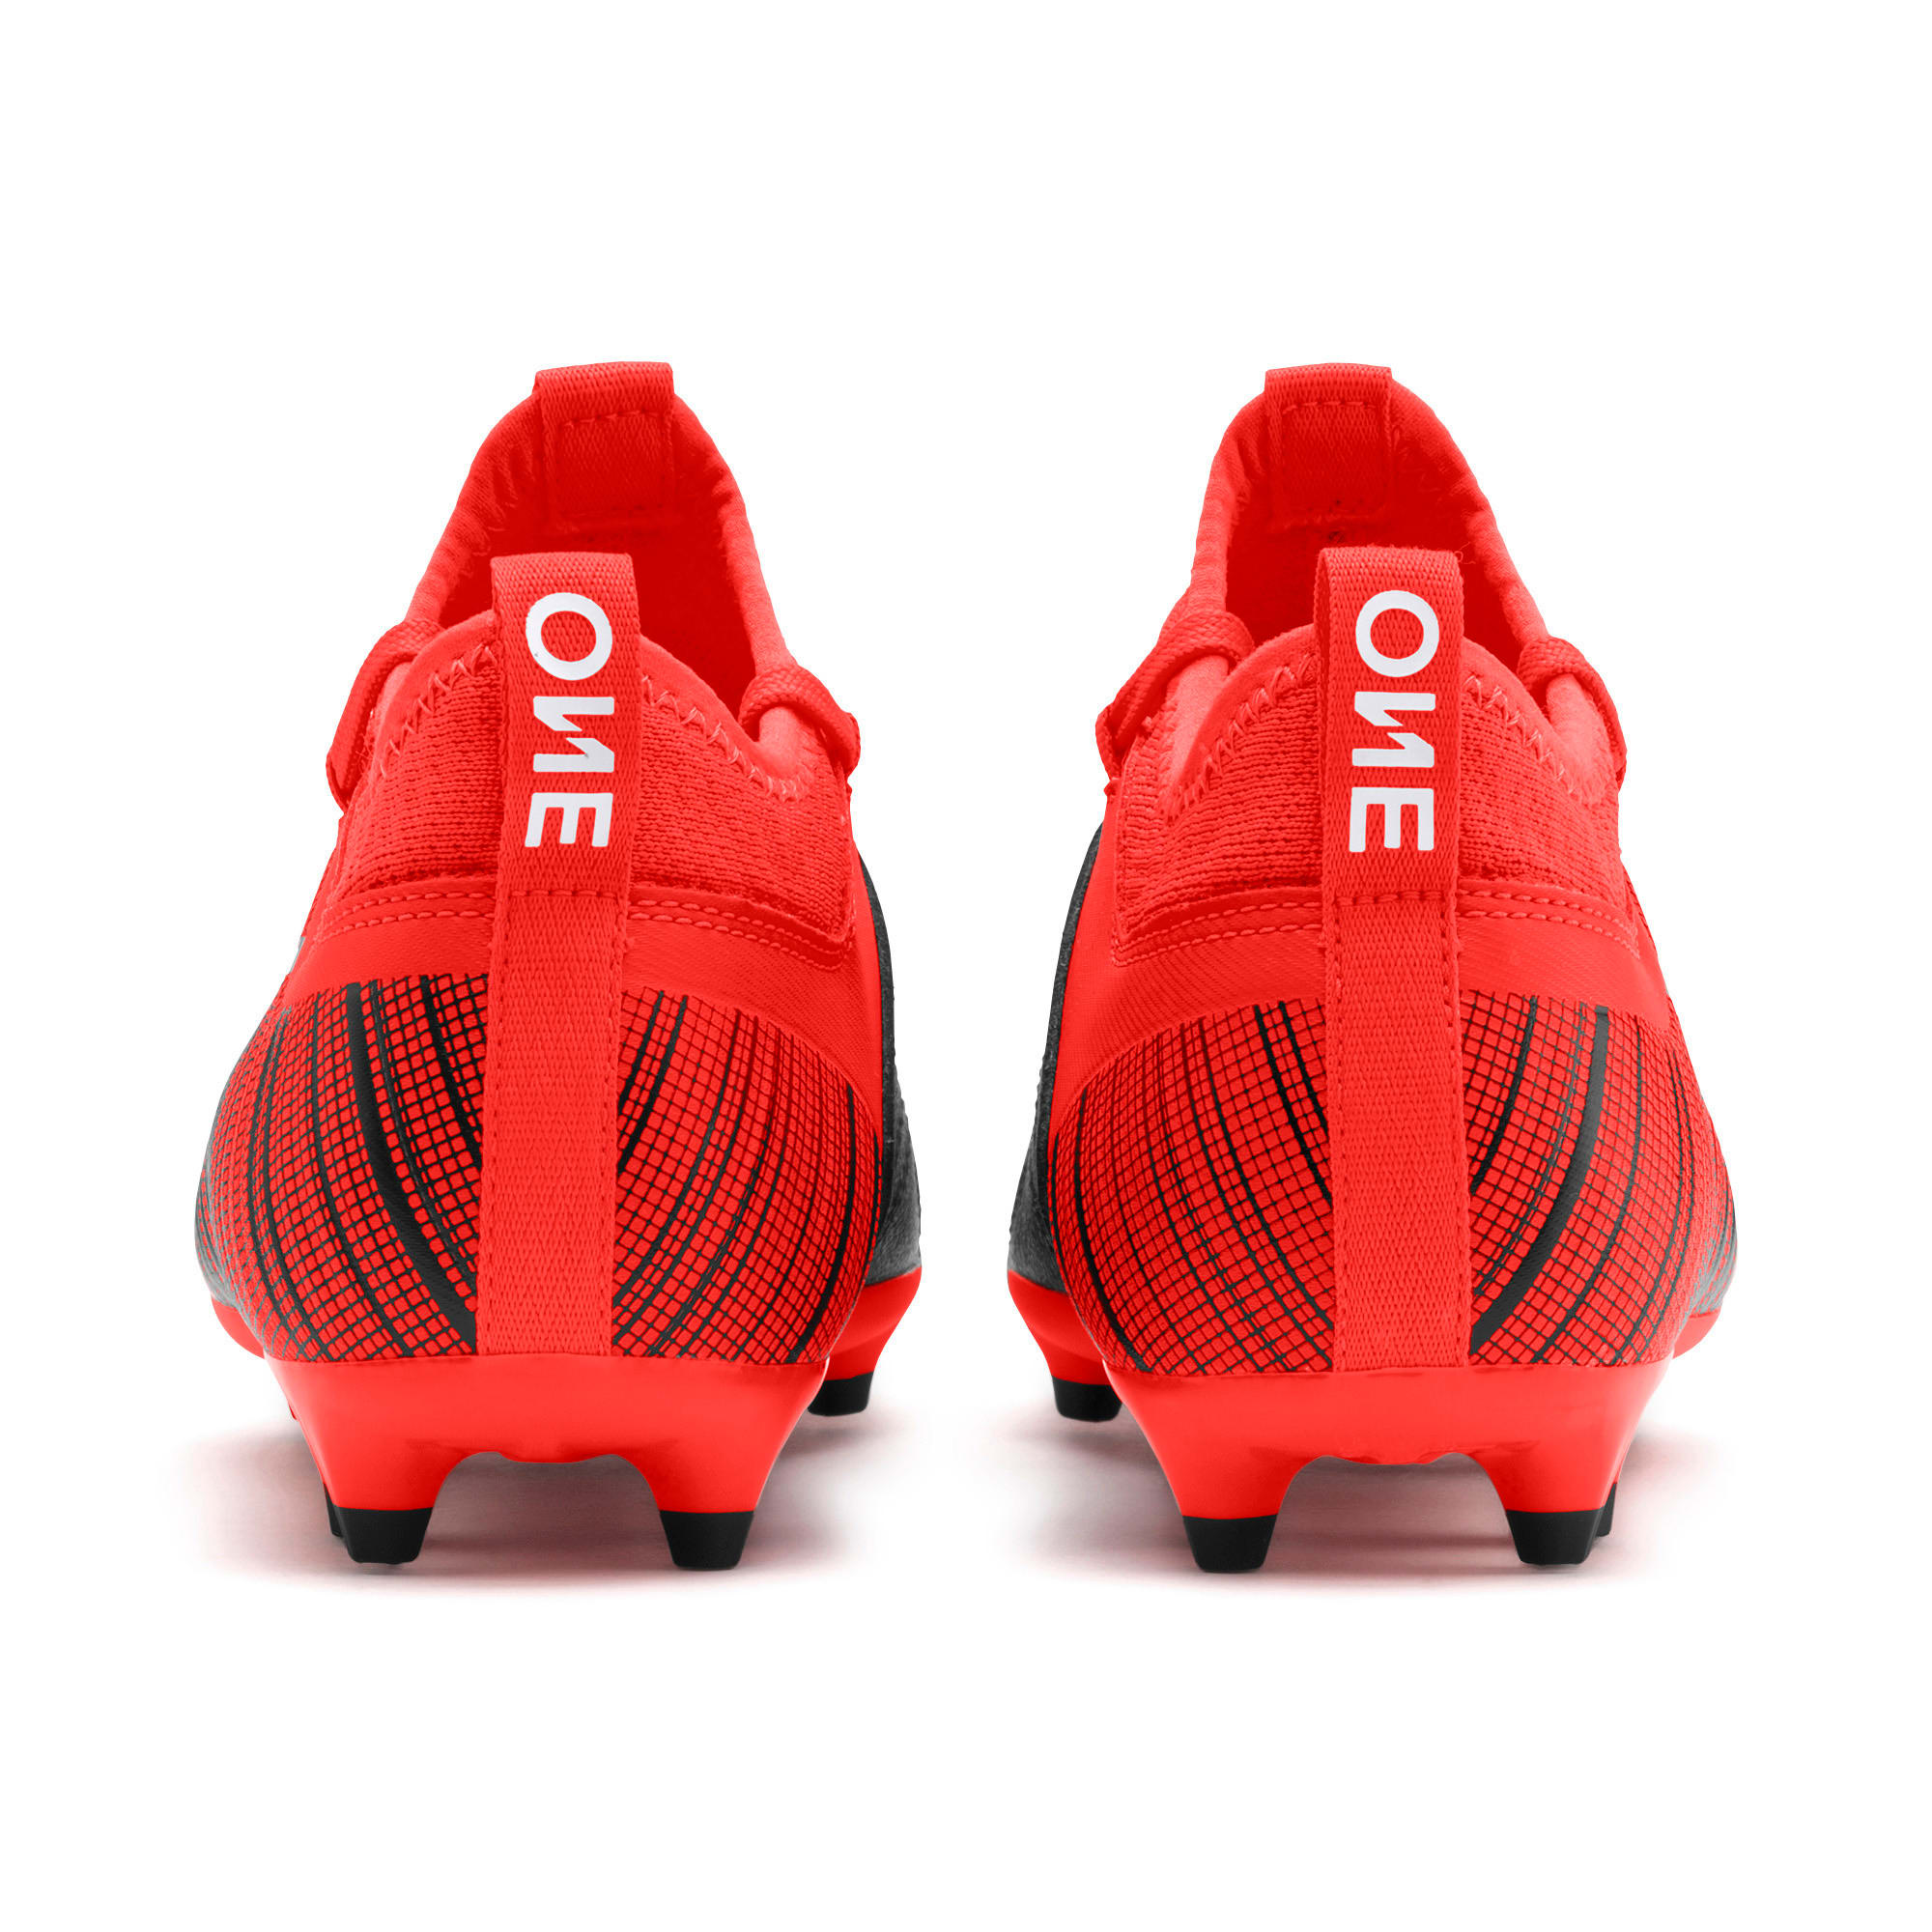 Thumbnail 3 of PUMA ONE 5.3 FG/AG Soccer Cleats JR, Black-Nrgy Red-Aged Silver, medium